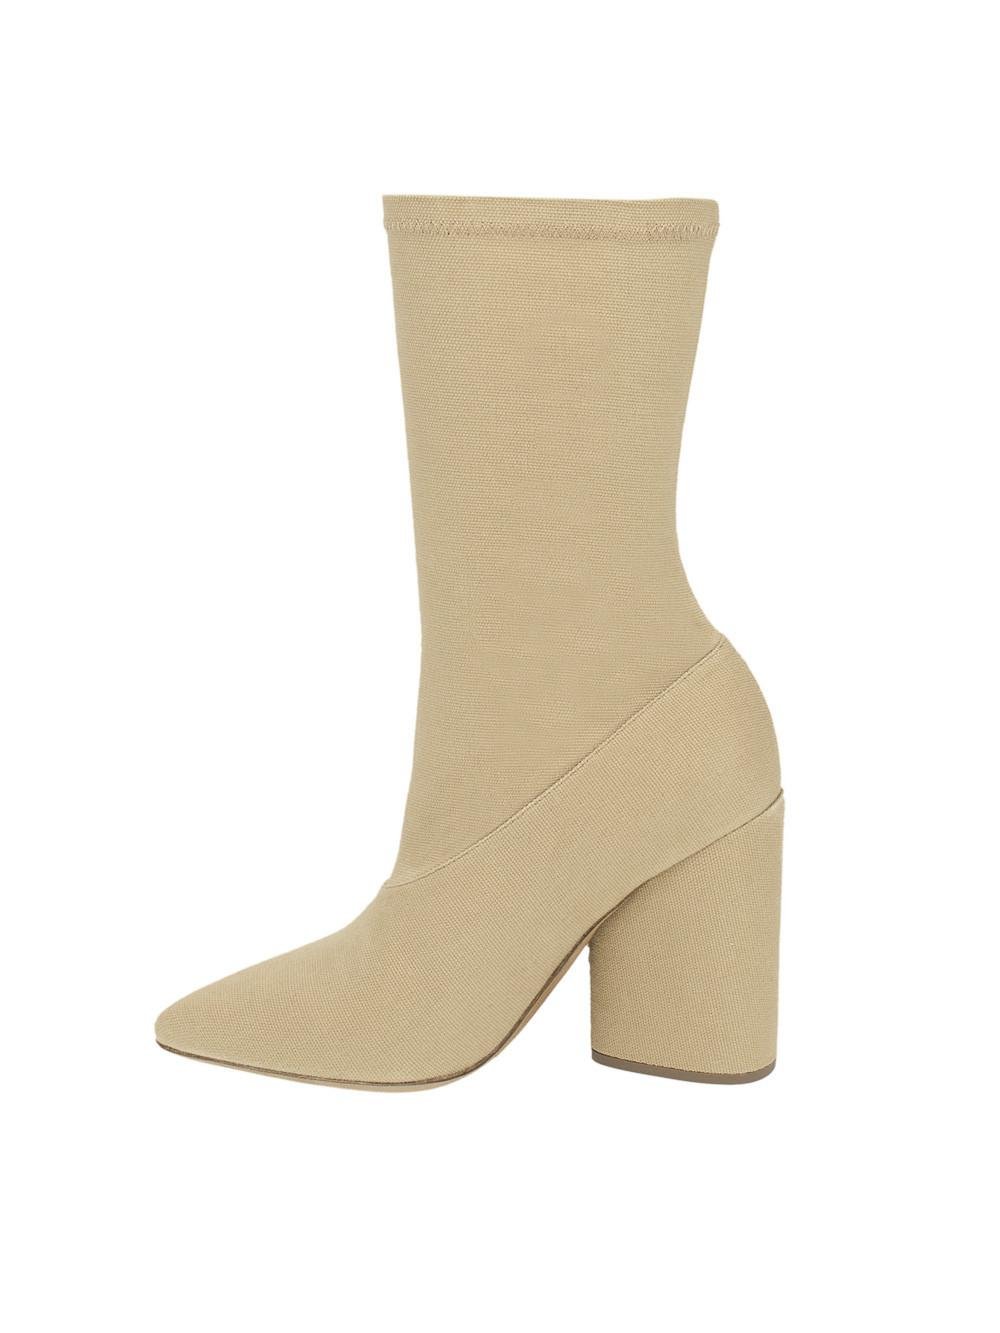 Yeezy Dollar Canvas Ankle Boot in Natural